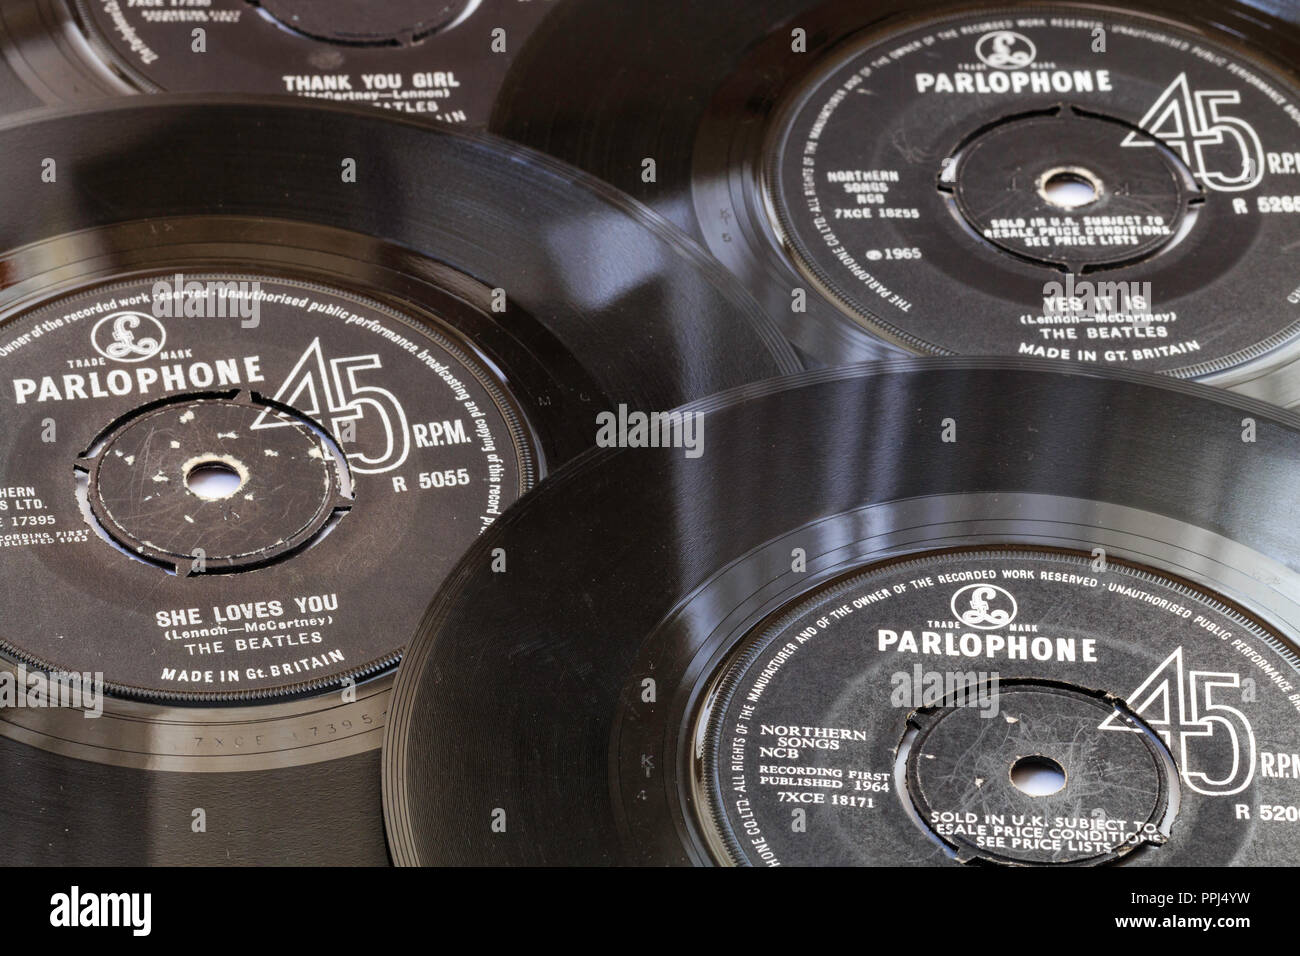 Four 45 rpm records, arranged. The Beatles, early 1960's hit singles. Parlophone label, 'She Loves You, I Feel Fine, Yes it Is' 'Thank you Girl' - Stock Image